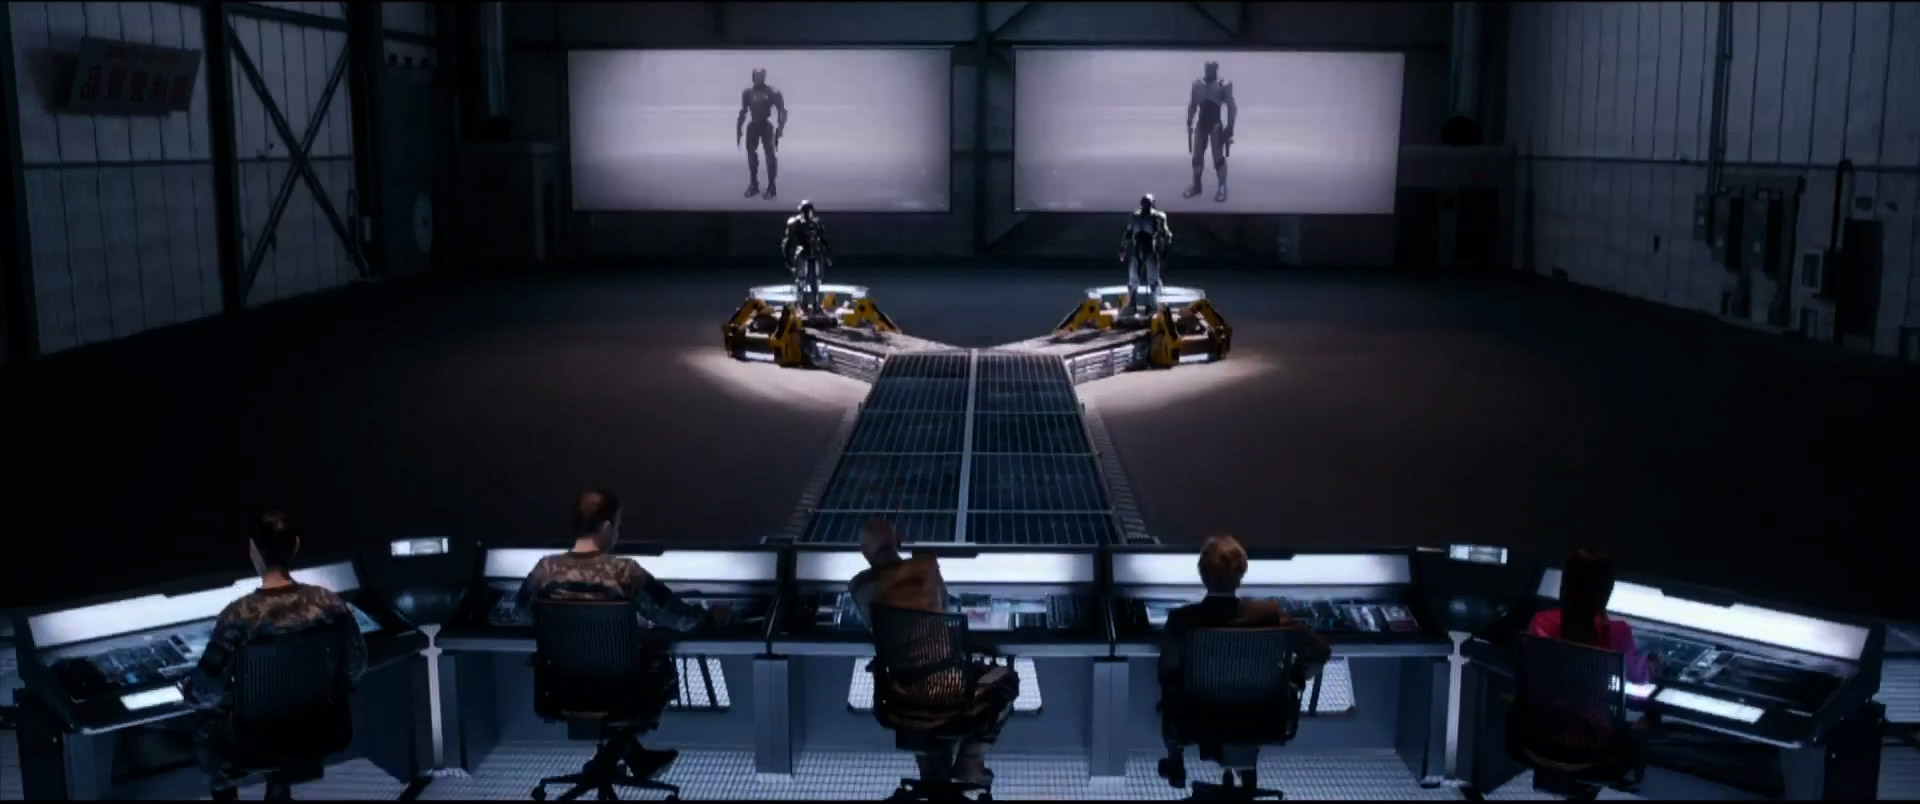 first-awesome-trailer-for-robocop-02.jpg